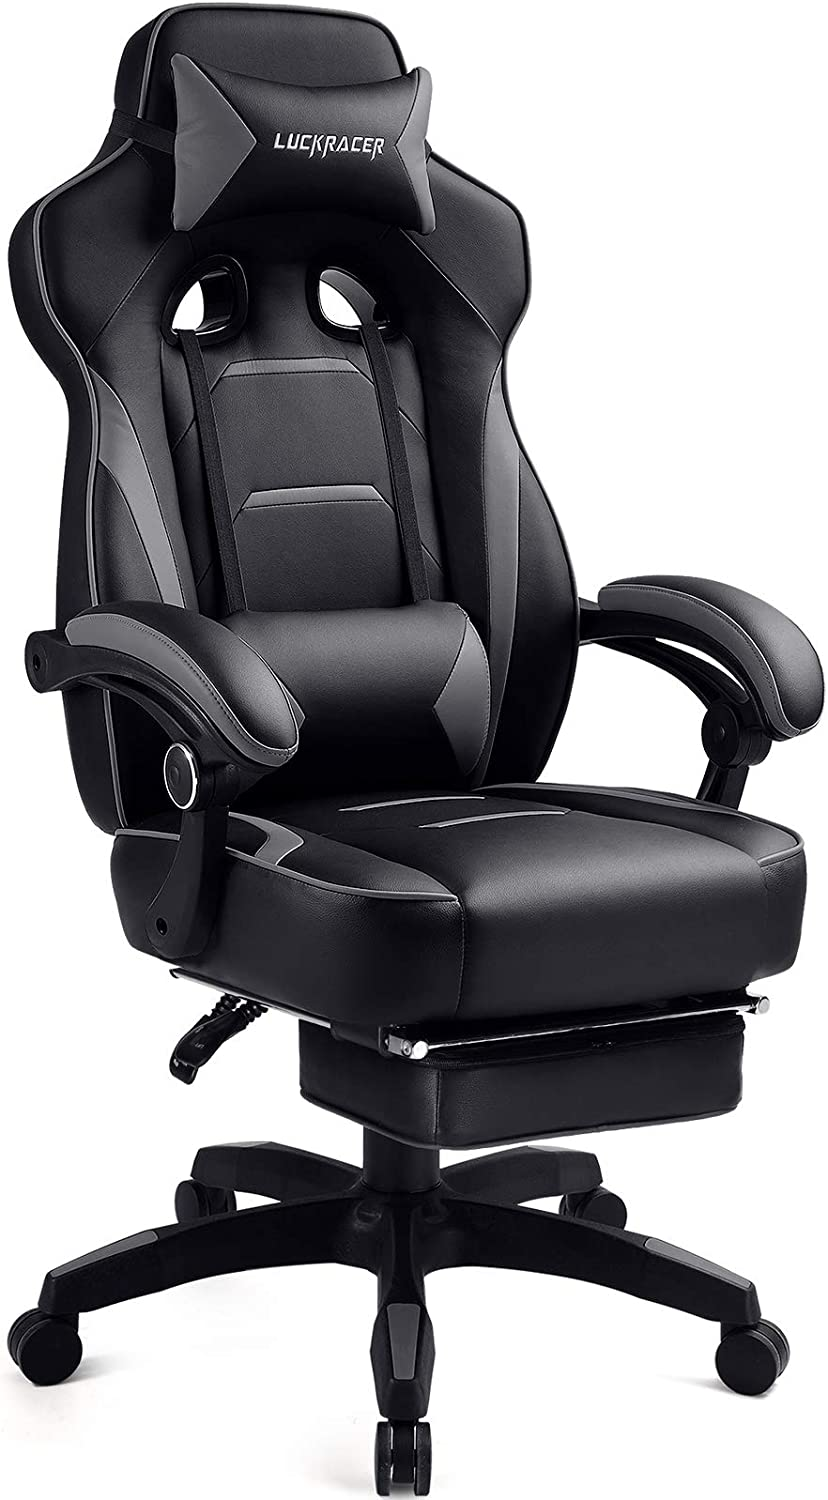 Luckracer Gaming Chair with Desk Office gift Selling and selling Footrest Ergonomic